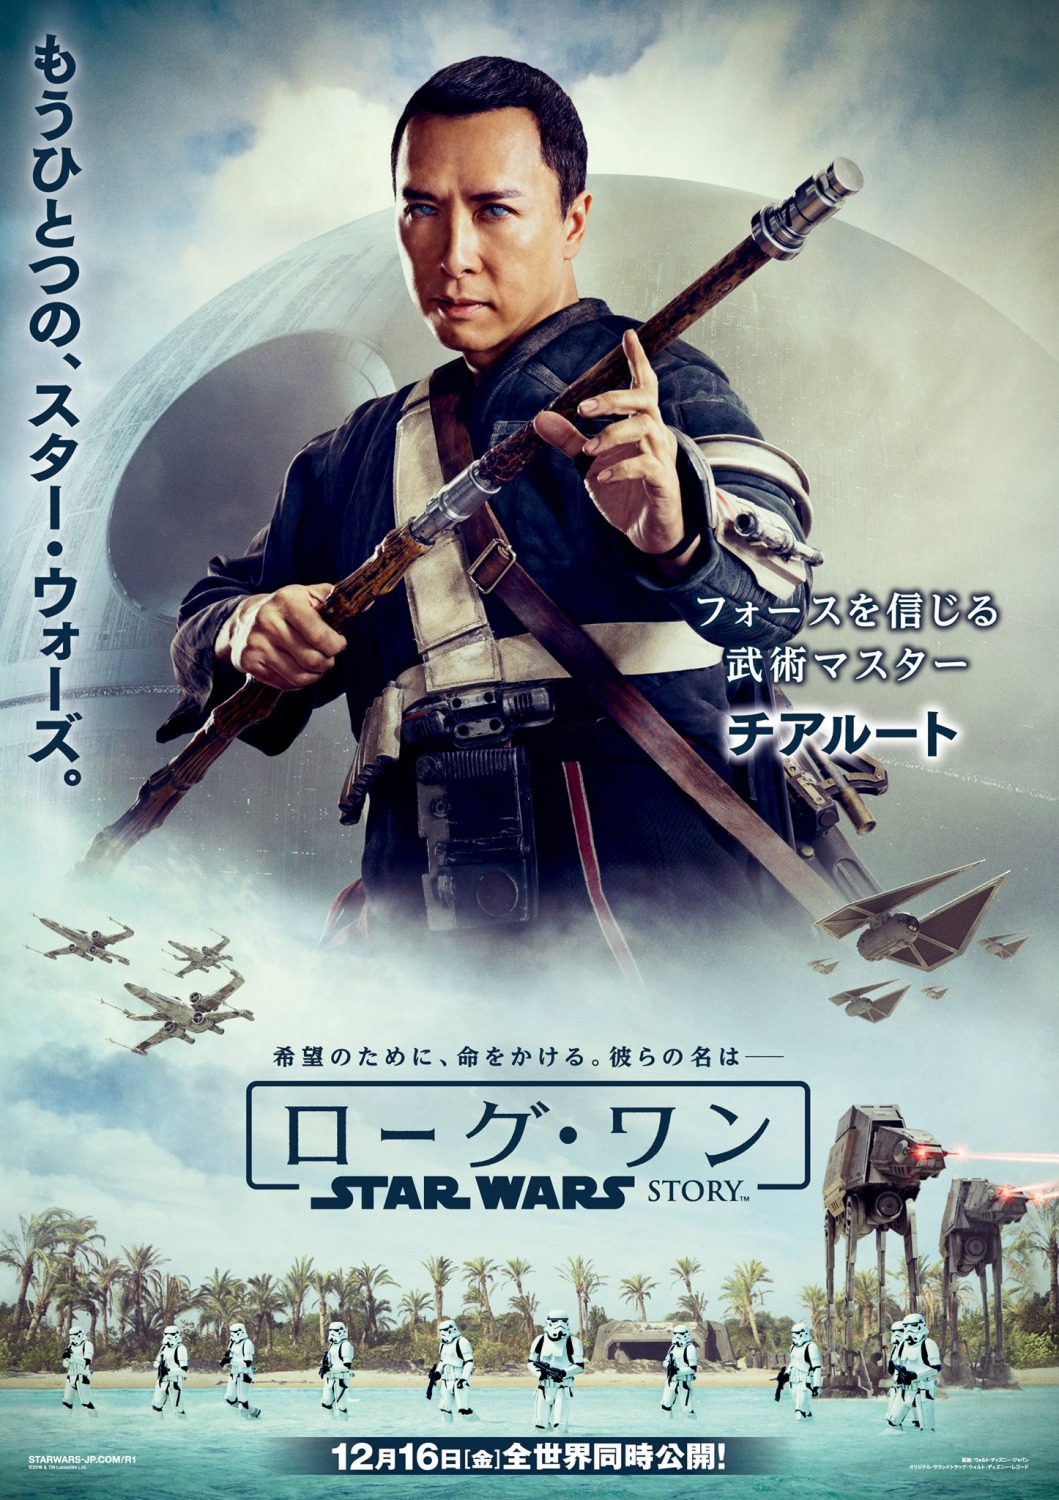 New Chinese Trailer For Rogue One A Star Wars Story Cityonfirecom